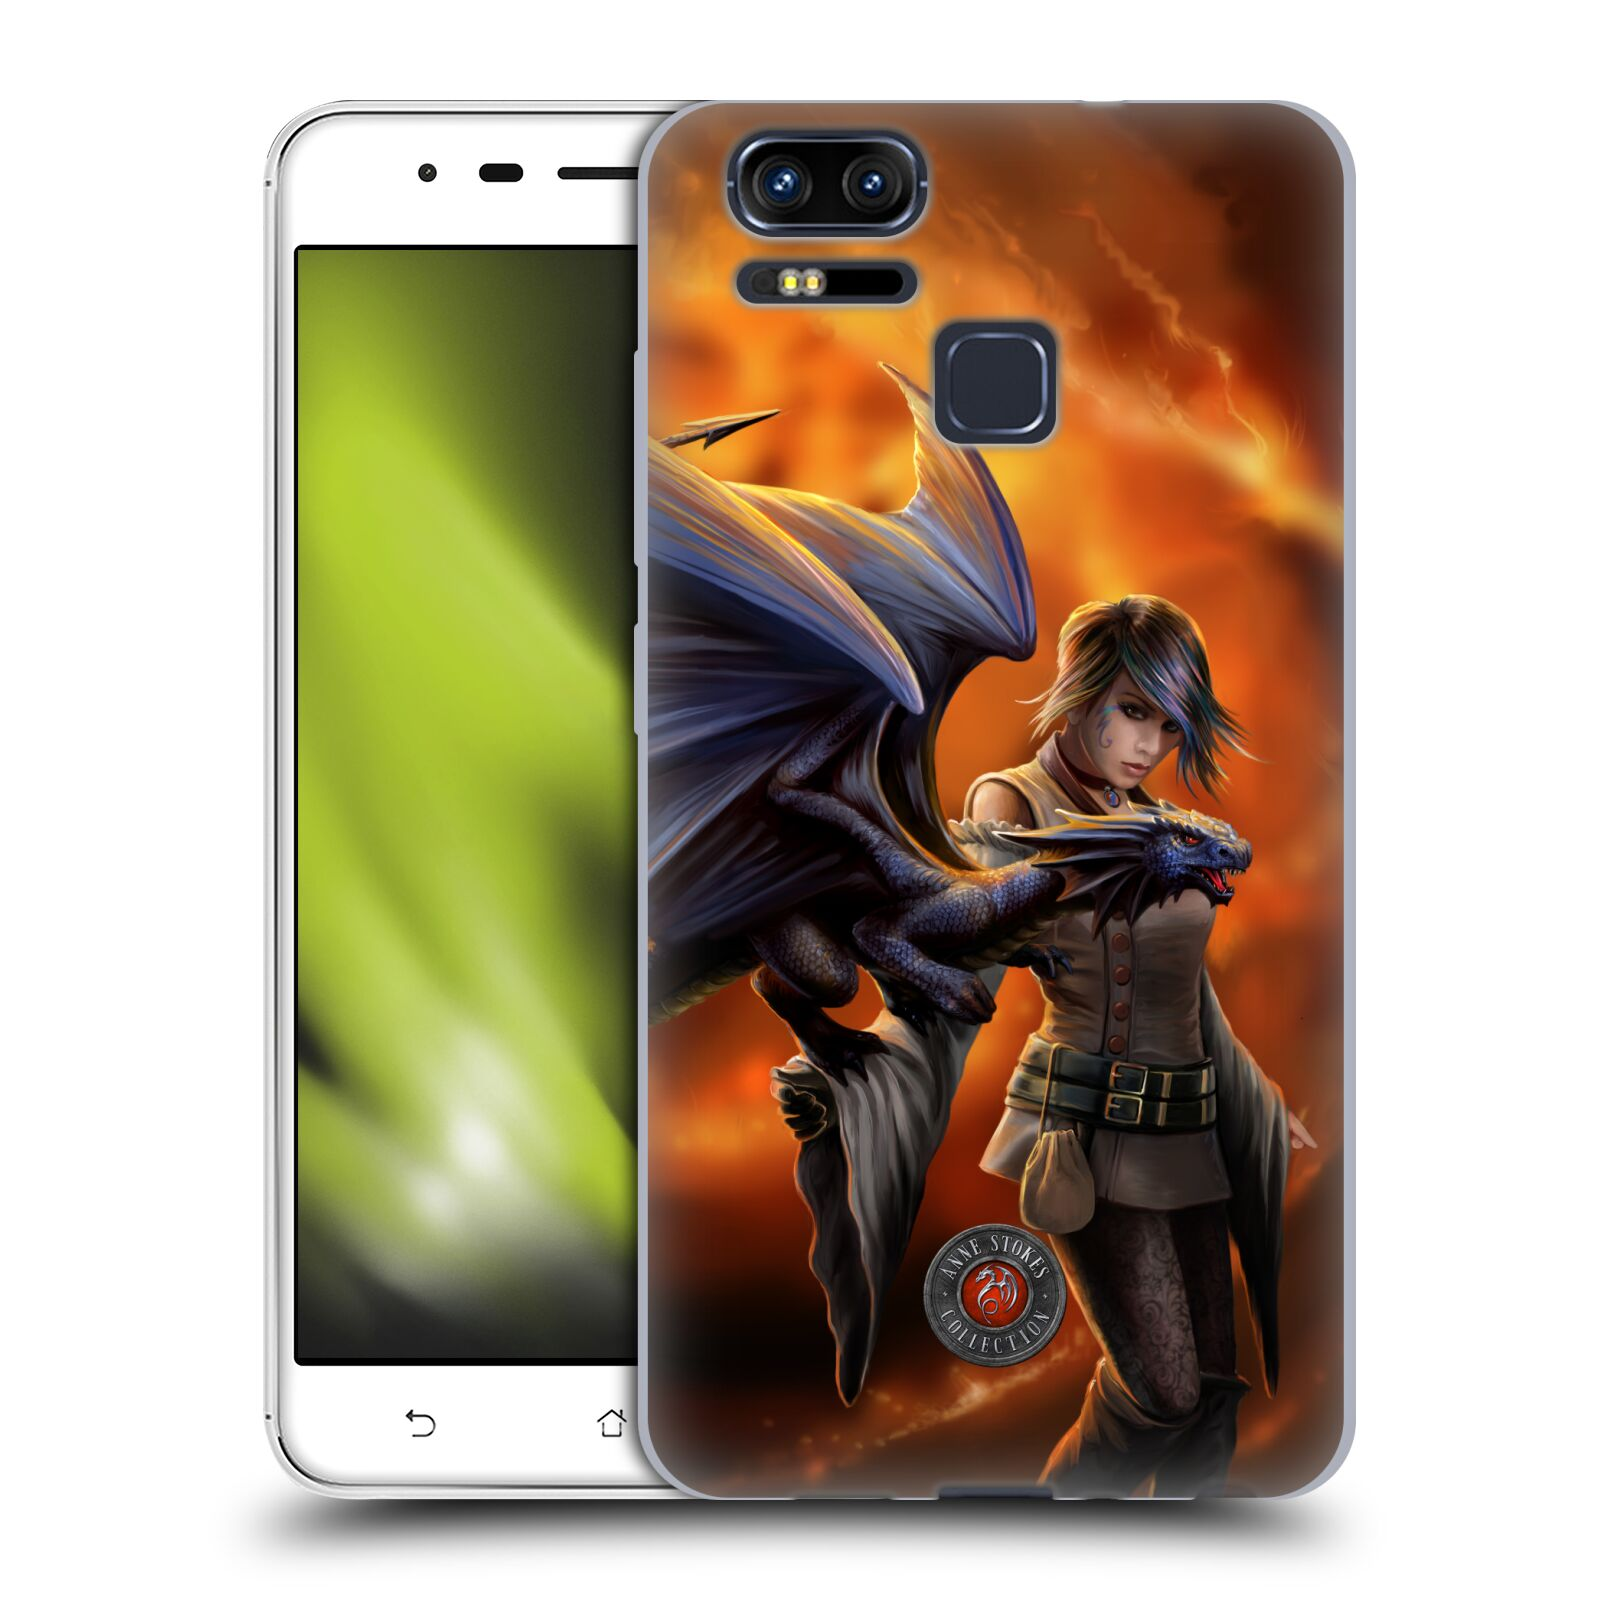 OFFICIAL-ANNE-STOKES-DRAGON-FRIENDSHIP-2-SOFT-GEL-CASE-FOR-ASUS-ZENFONE-PHONES